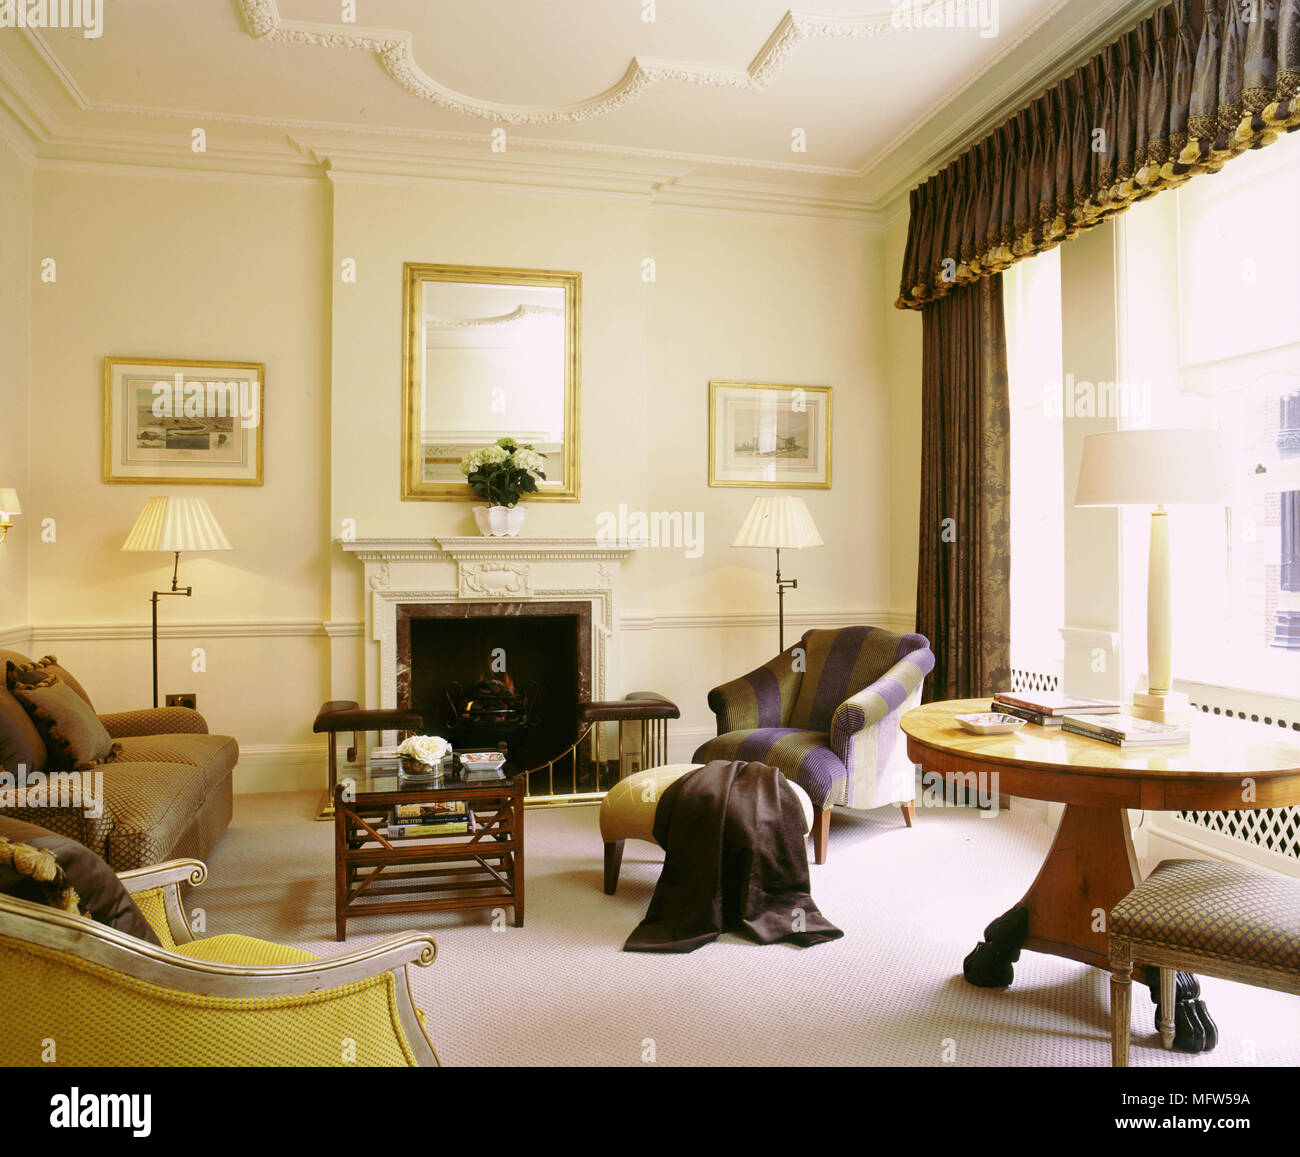 Traditional Cream Sitting Room High Ceilings Curtains Pelmet Fireplace Period Furniture